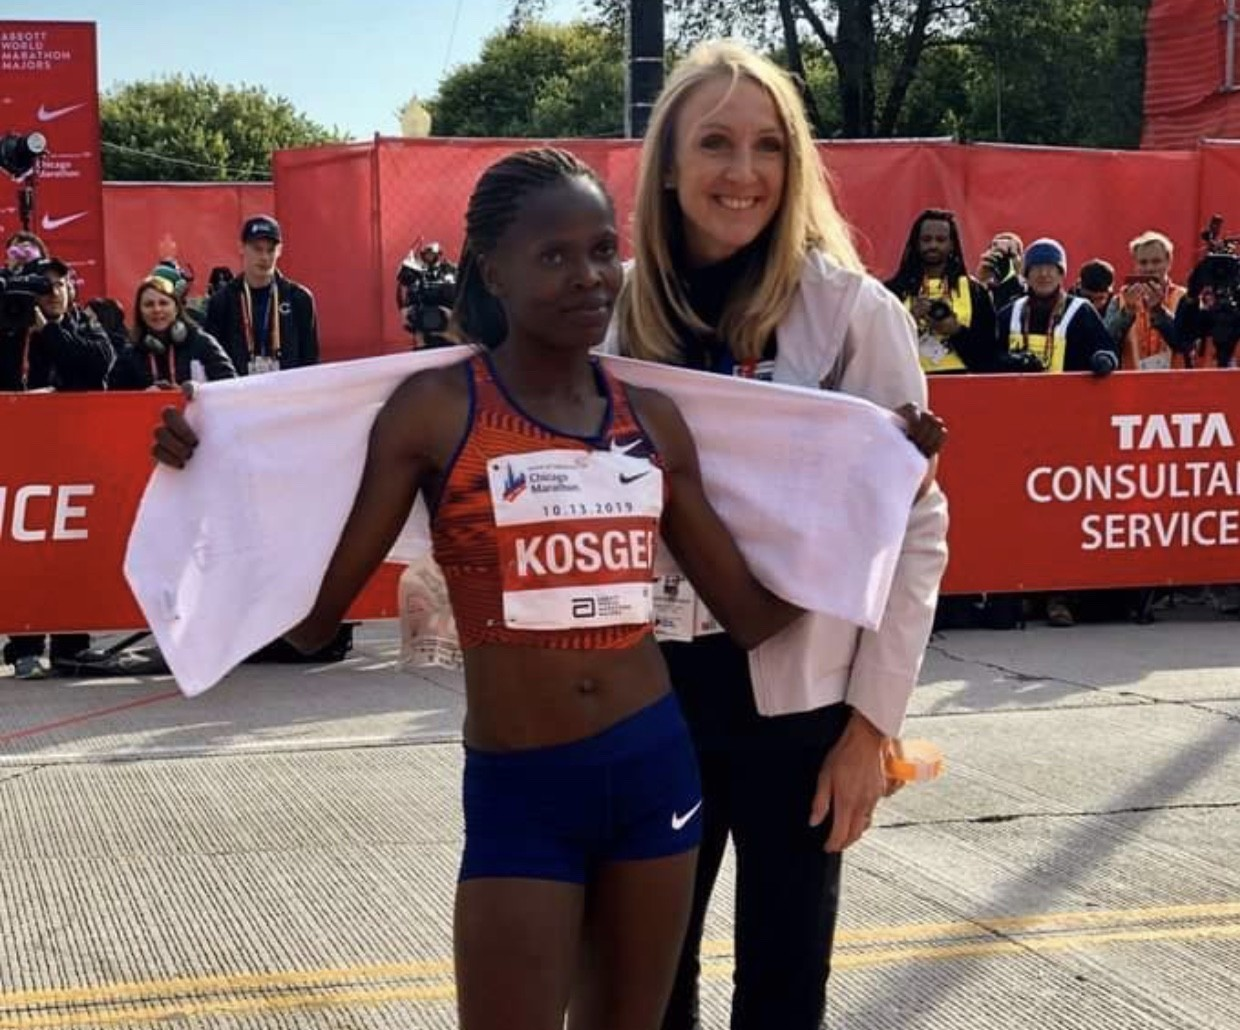 The whole country of Kenya is buzzing with excitement as Brigid Kosgei smashed the world record in Chicago just 33 hours after Eliud Kipchoge clocked the first ever sub two hour marathon in Vienna